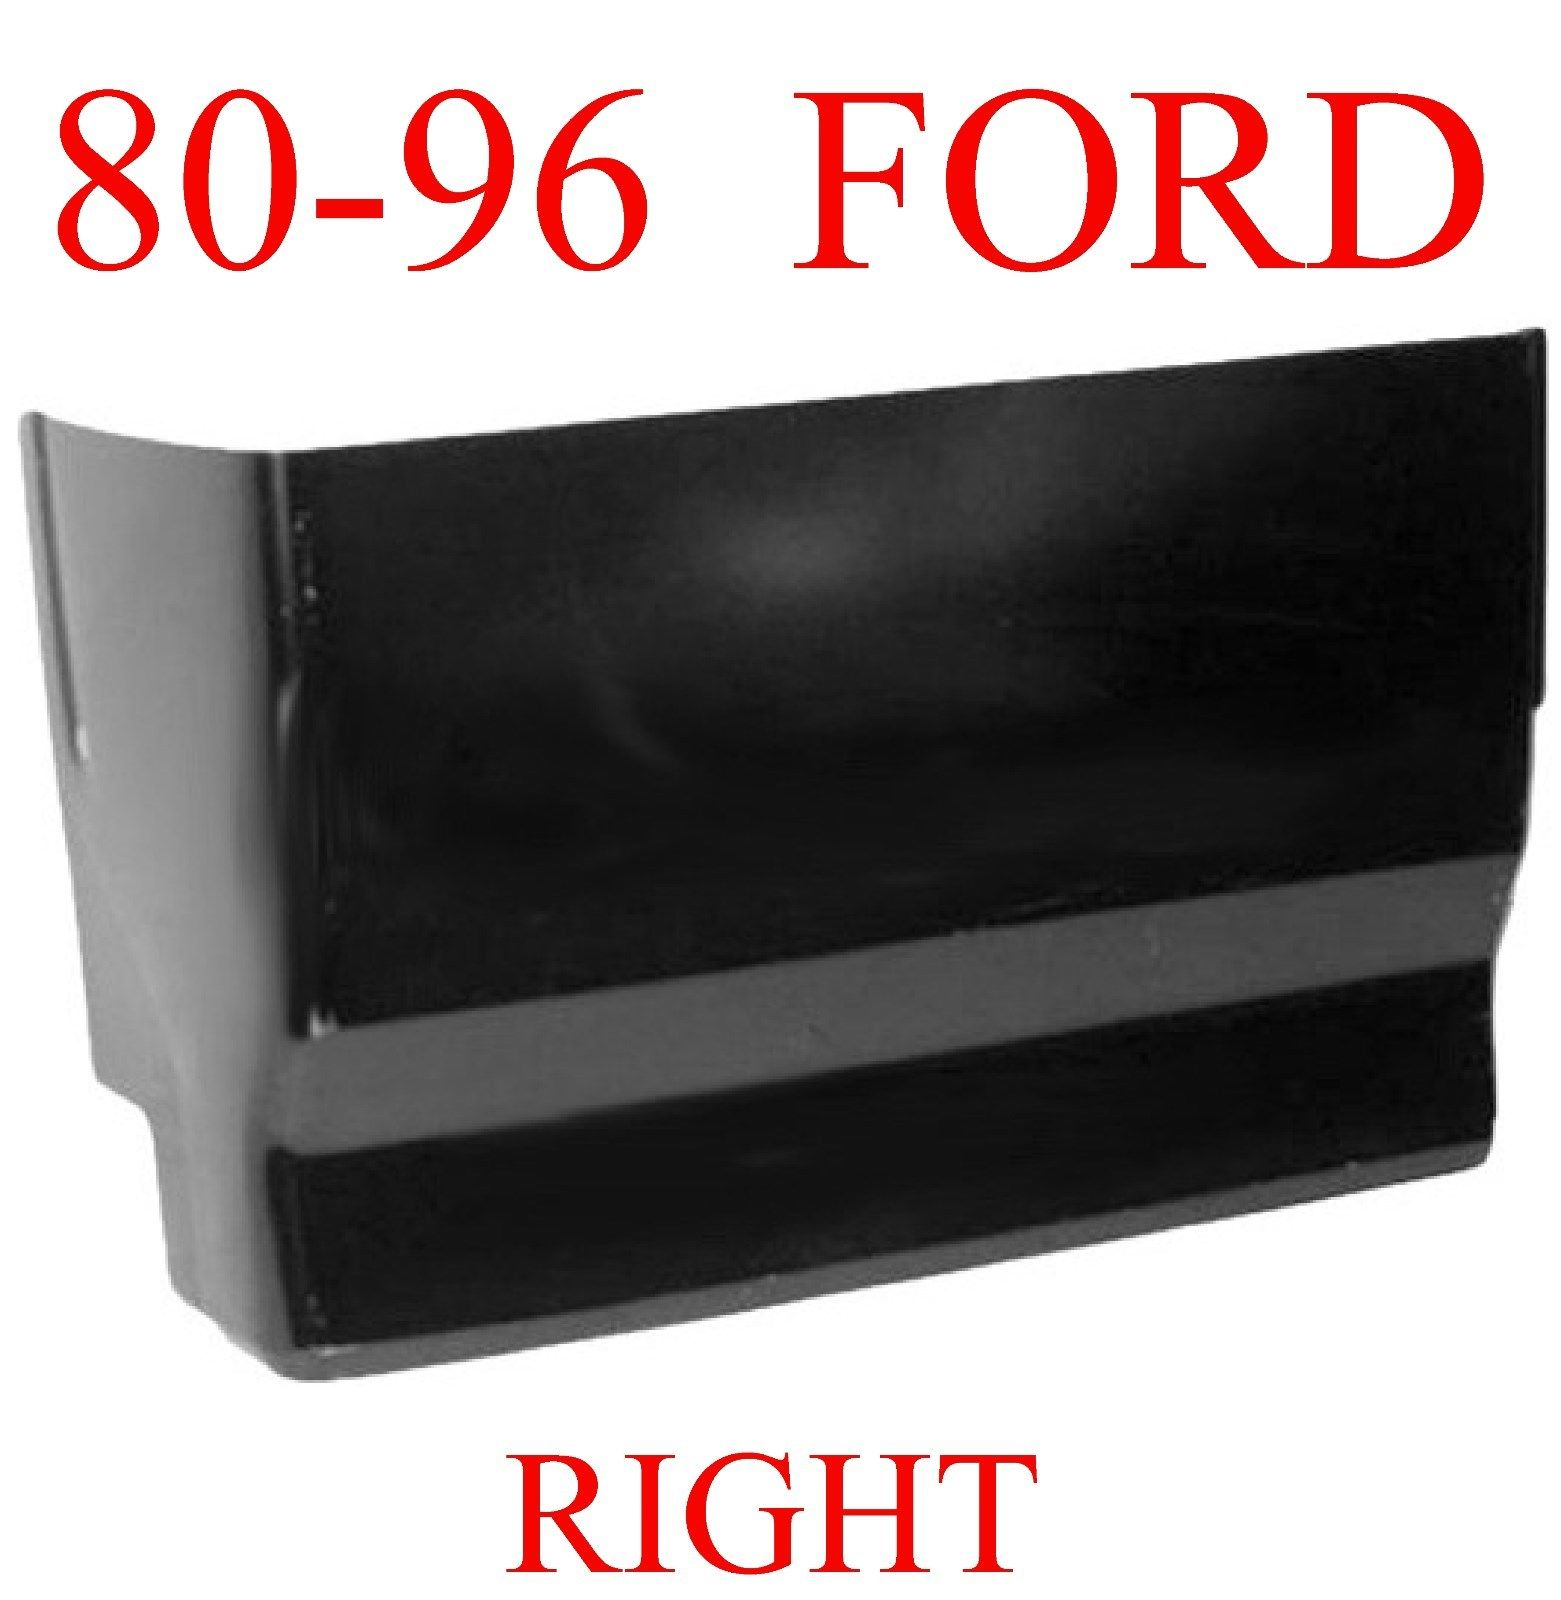 80-96 Ford RIGHT Extended Super Cab Corner